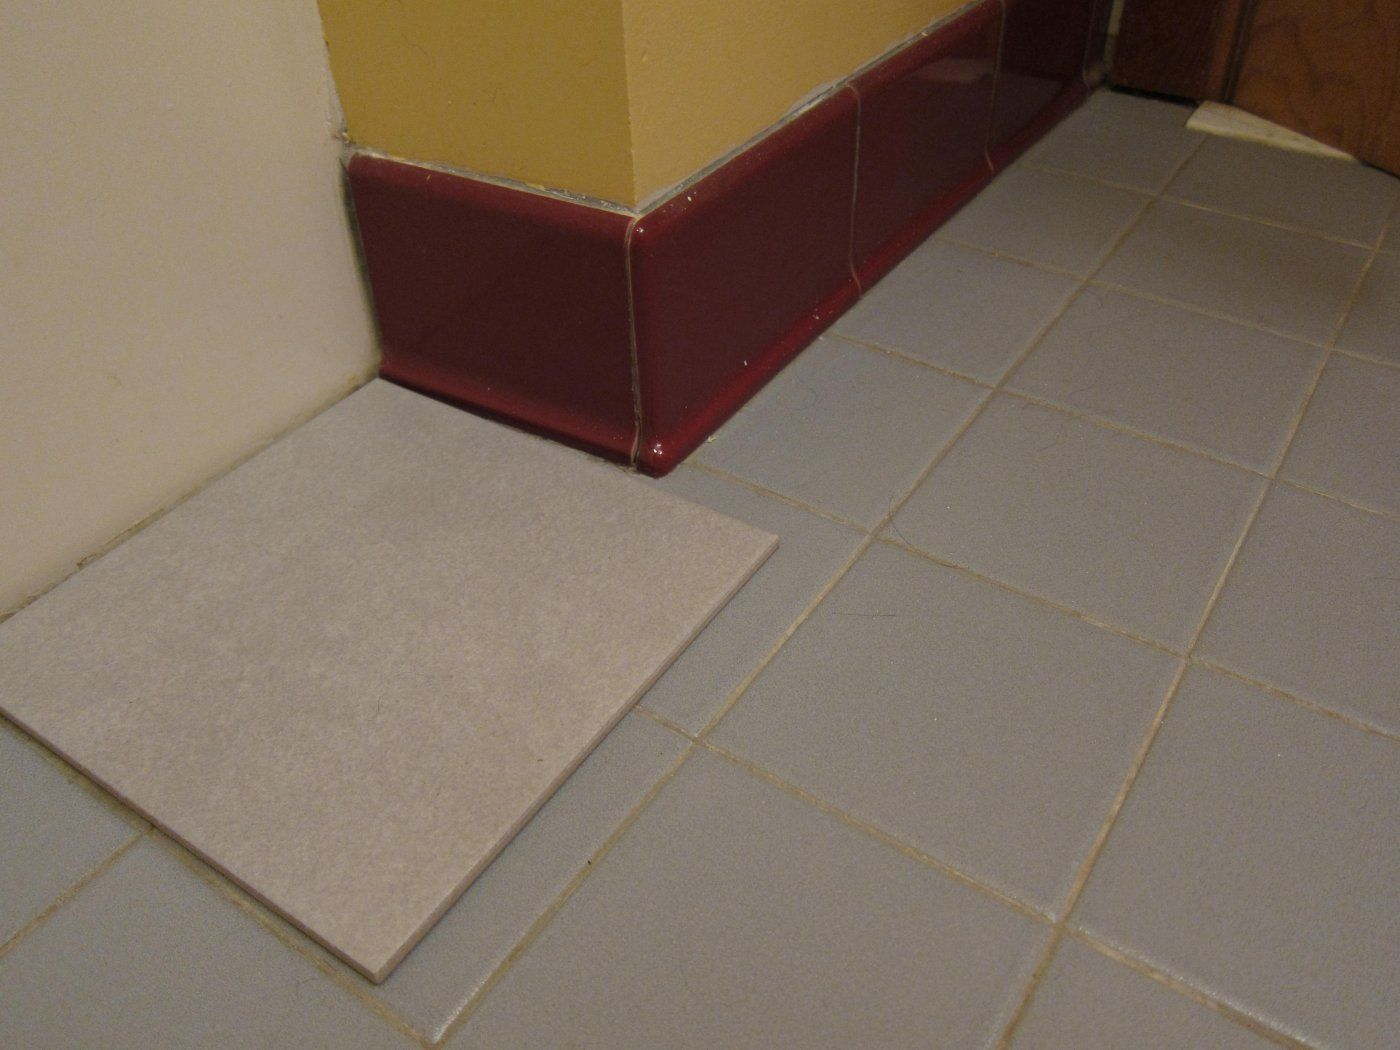 Wooden baseboard in a tile floor bathroom hearth forums home img1078g dailygadgetfo Images